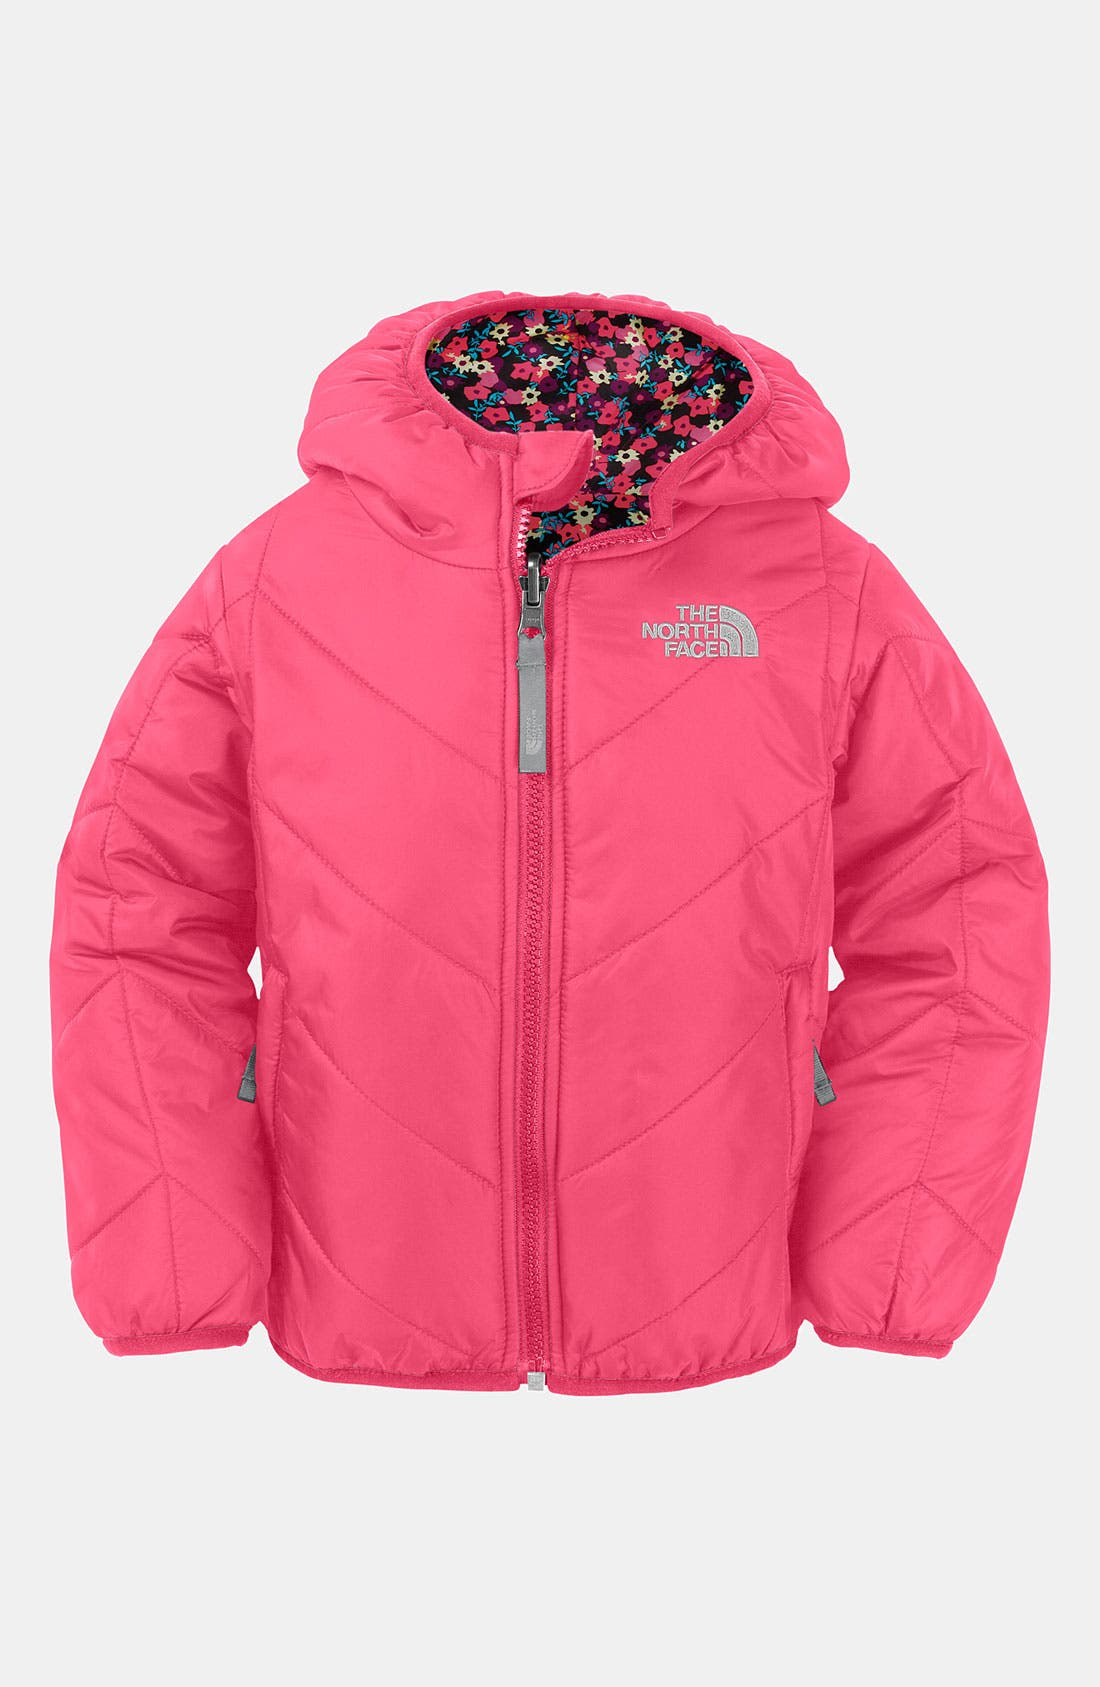 Alternate Image 1 Selected - The North Face 'Perrito' Reversible Jacket (Toddler)